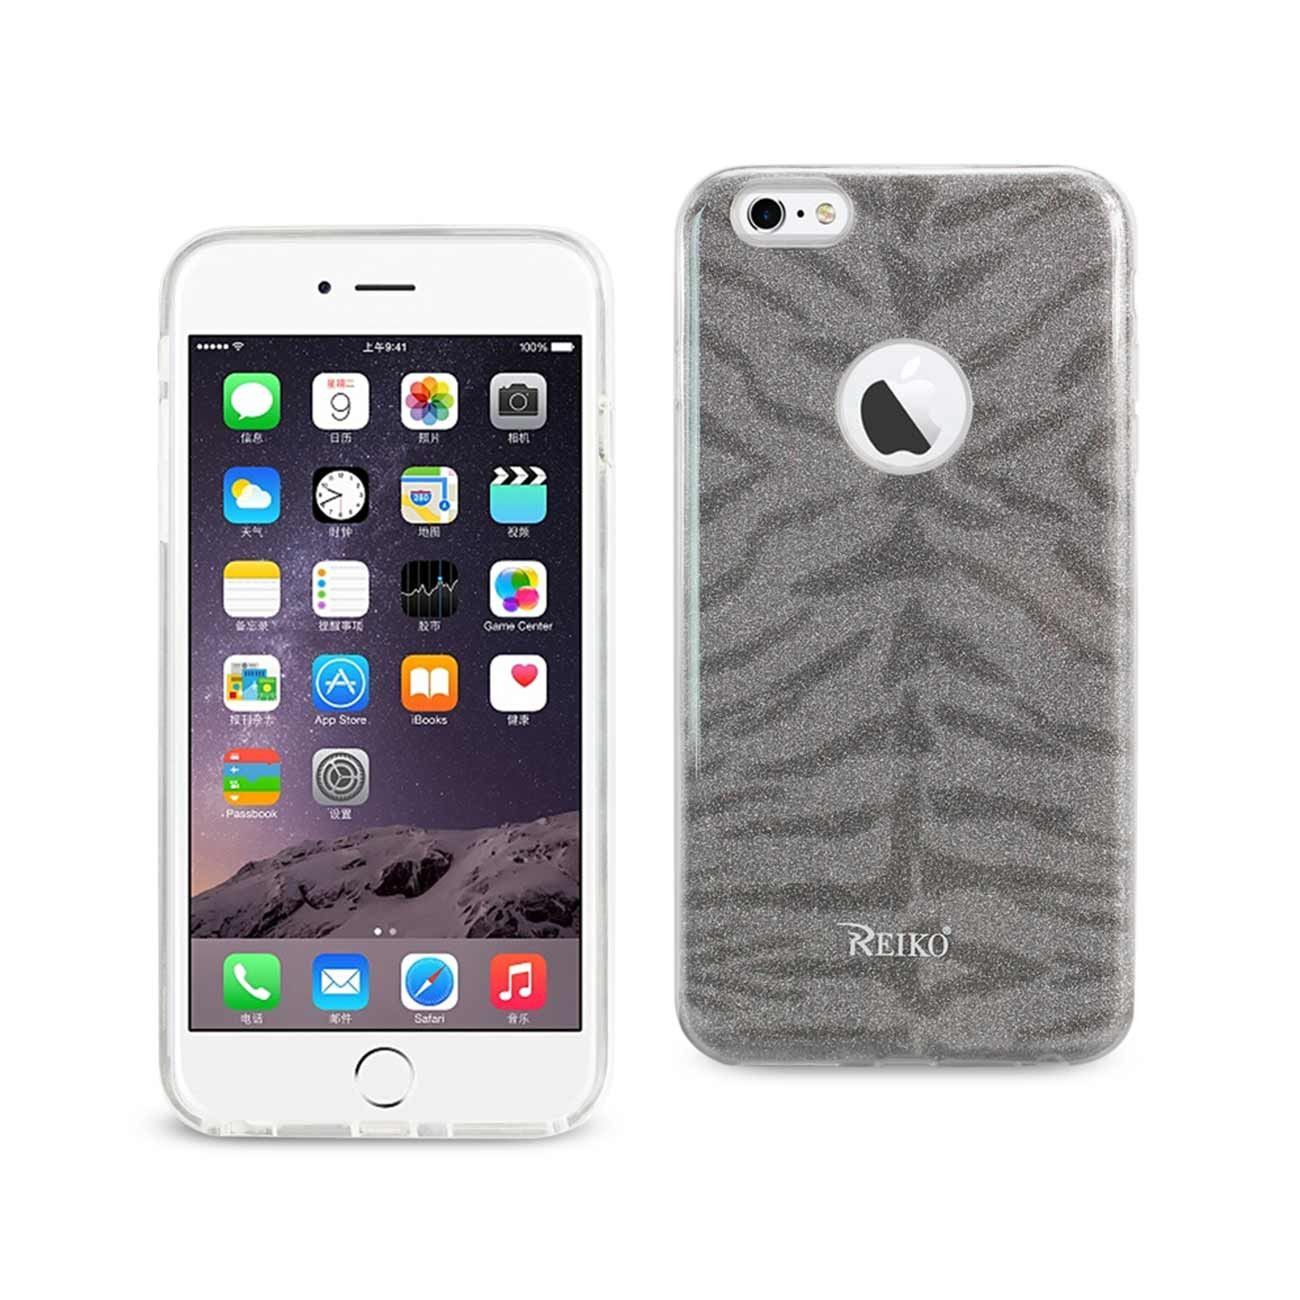 REIKO IPHONE 6 PLUS/ 6S PLUS SHINE GLITTER SHIMMER TIGER STRIPE HYBRID CASE IN GRAY